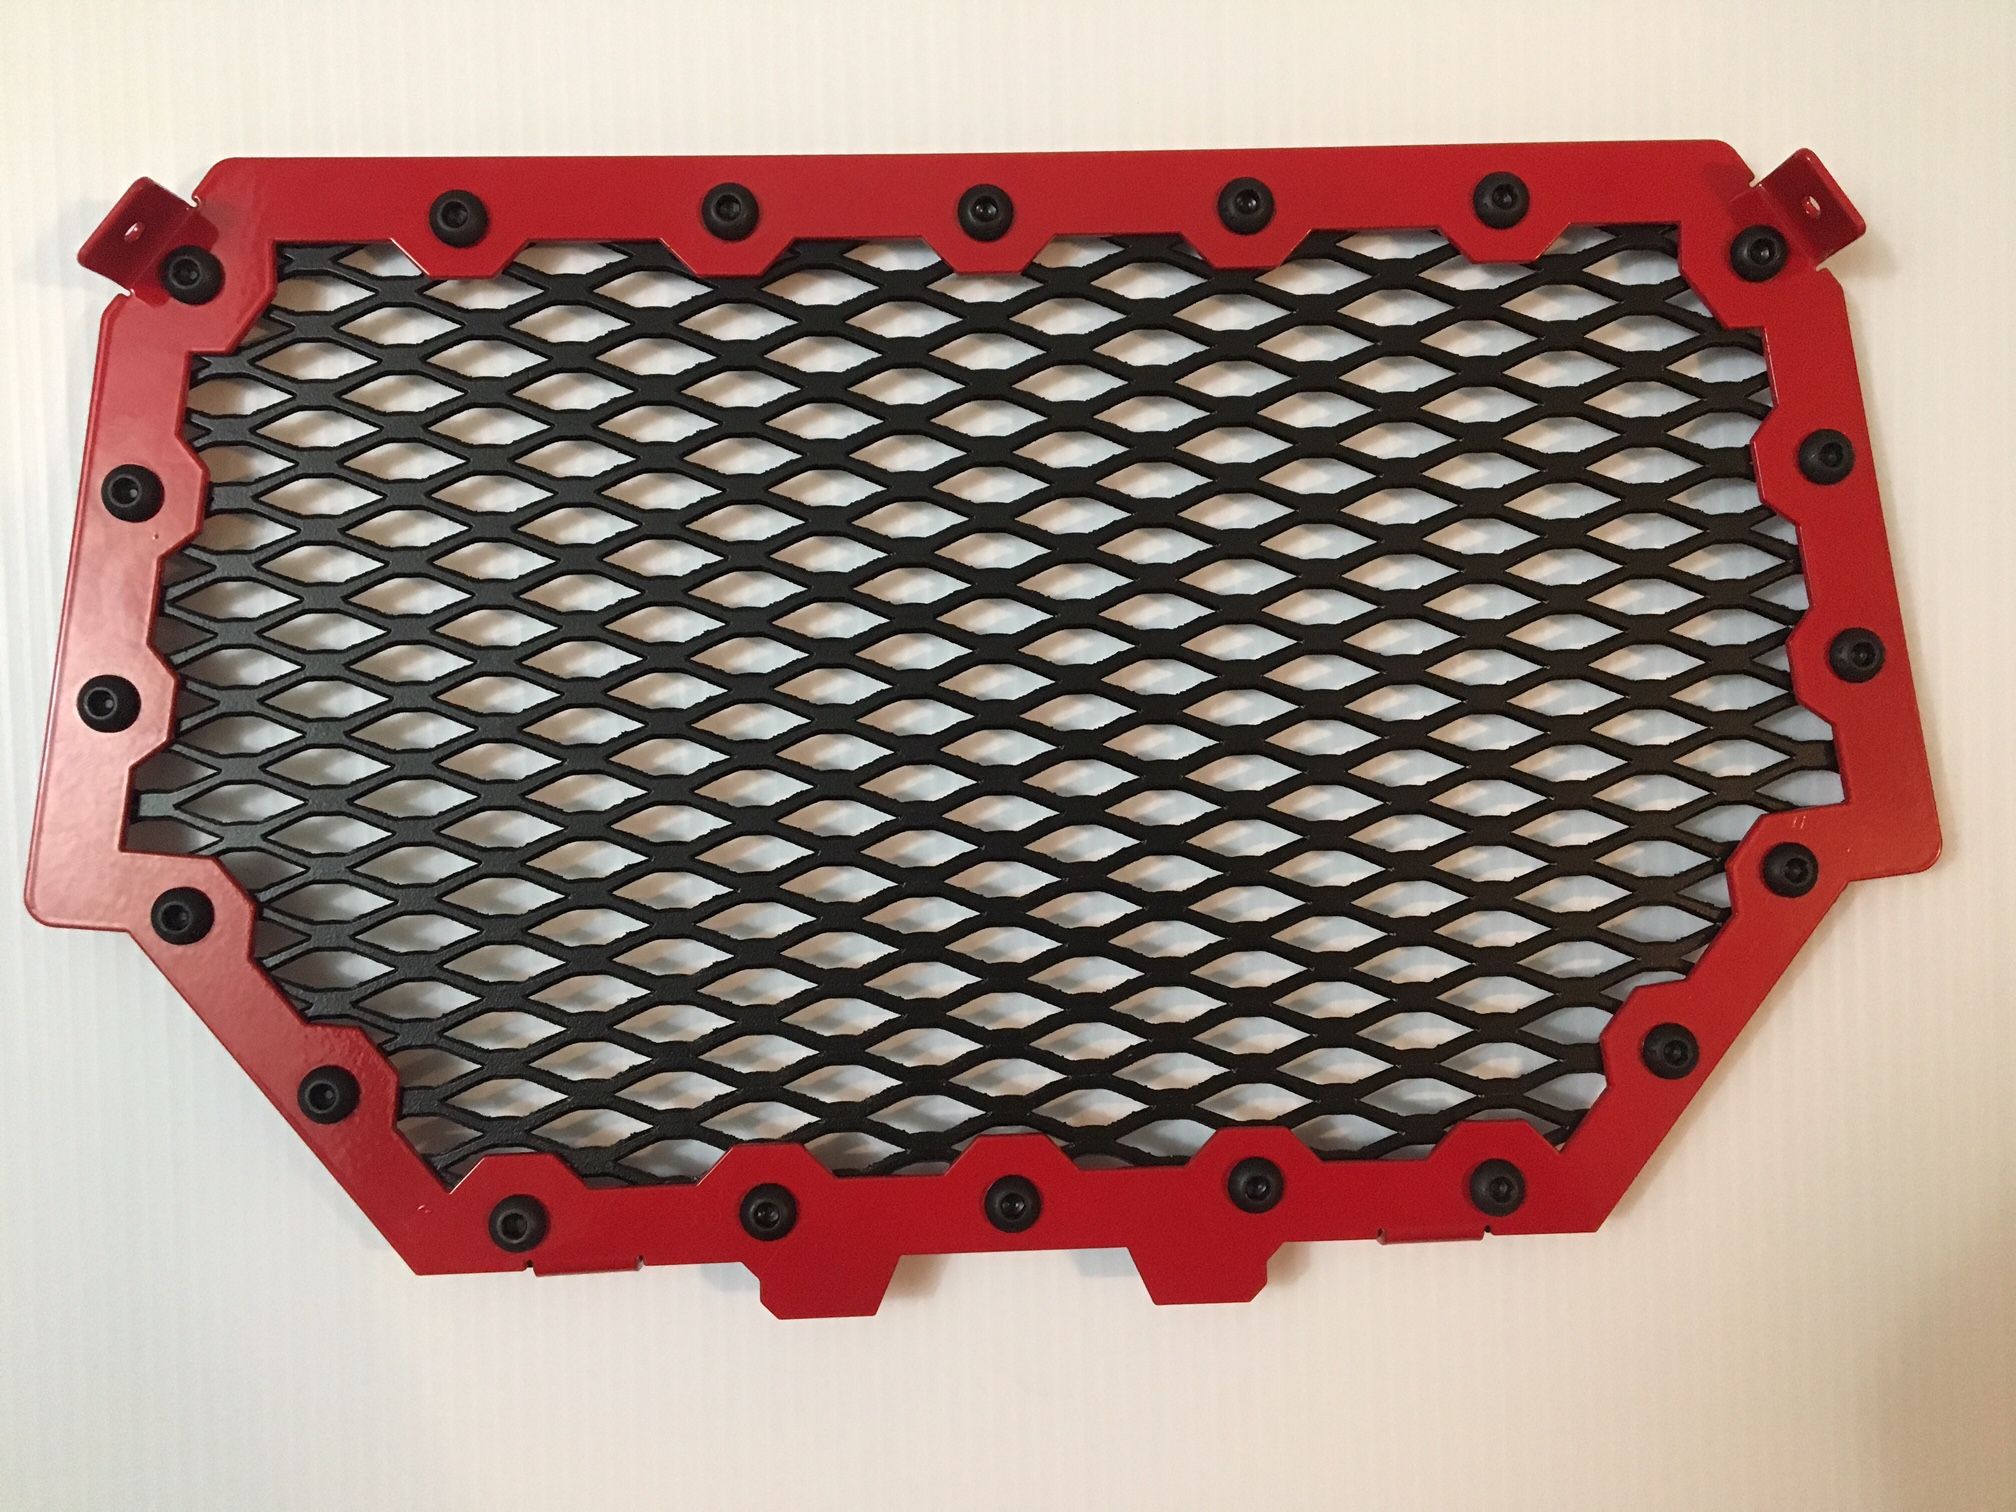 CUSTOM GRILLE FOR 2014 2017 RZR 1000 XP & 2015 2017 RZR 900 S and Trail